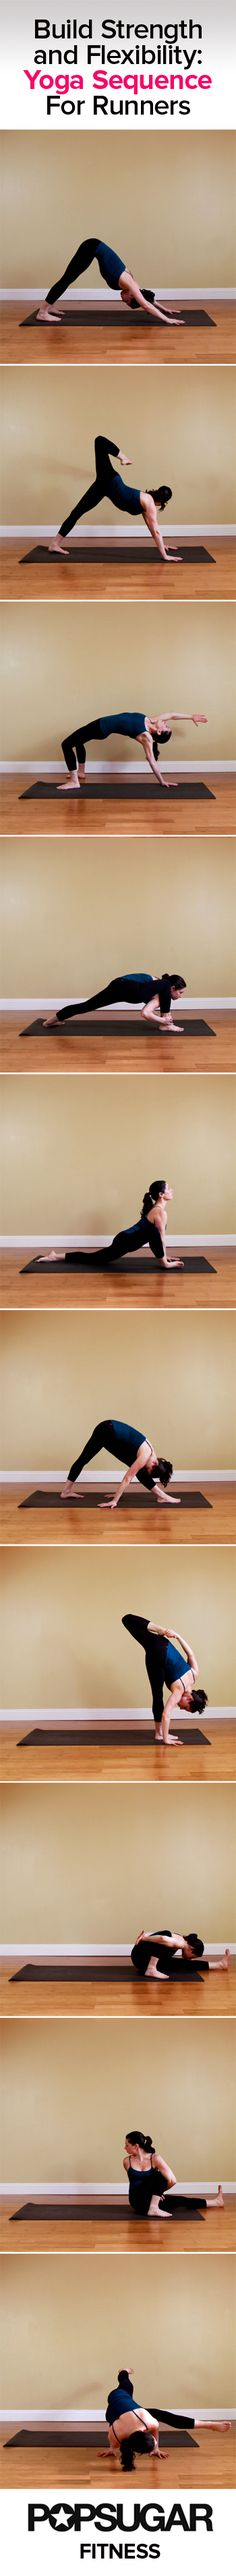 stretch routine for runners, yoga for legs, fitness, runner legs, muscles, yoga poses, places, posters, yoga sequences